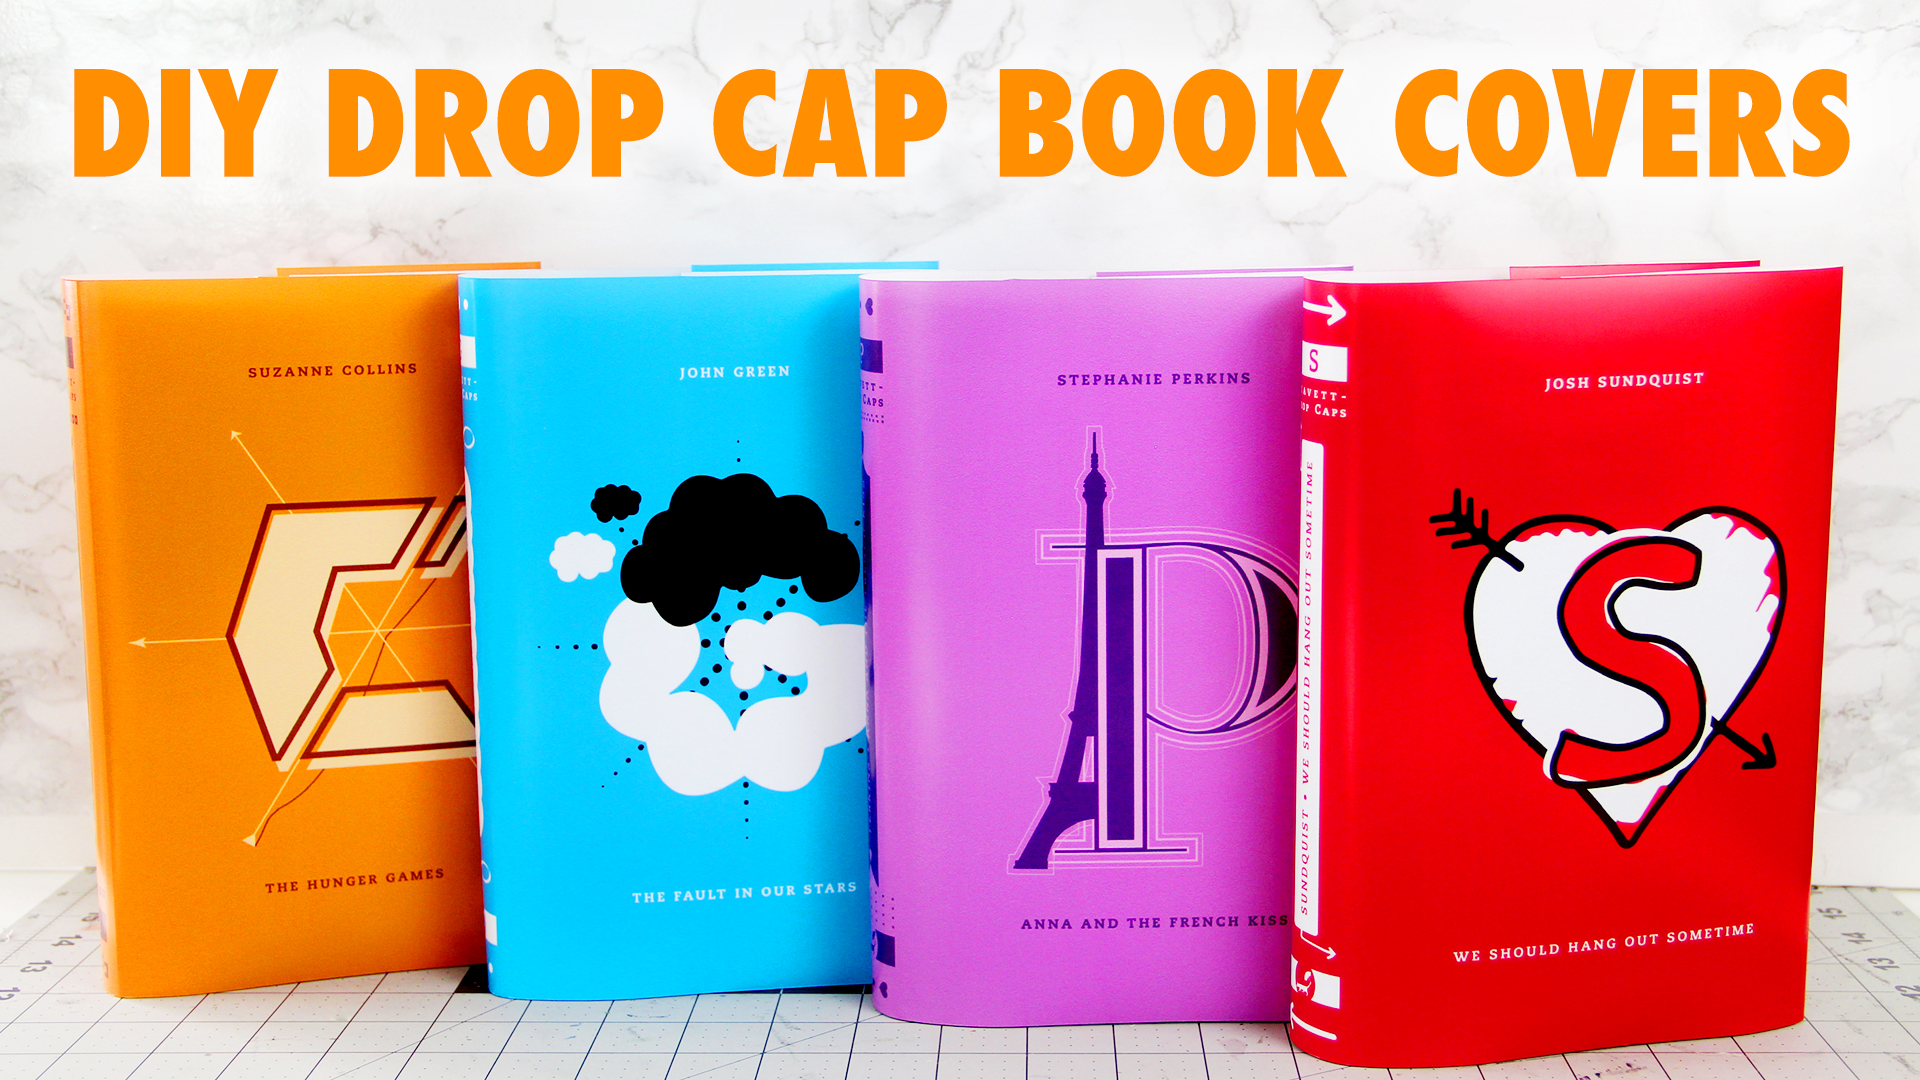 Book Cover Design Hd ~ Diy penguin drop cap book covers karen kavett